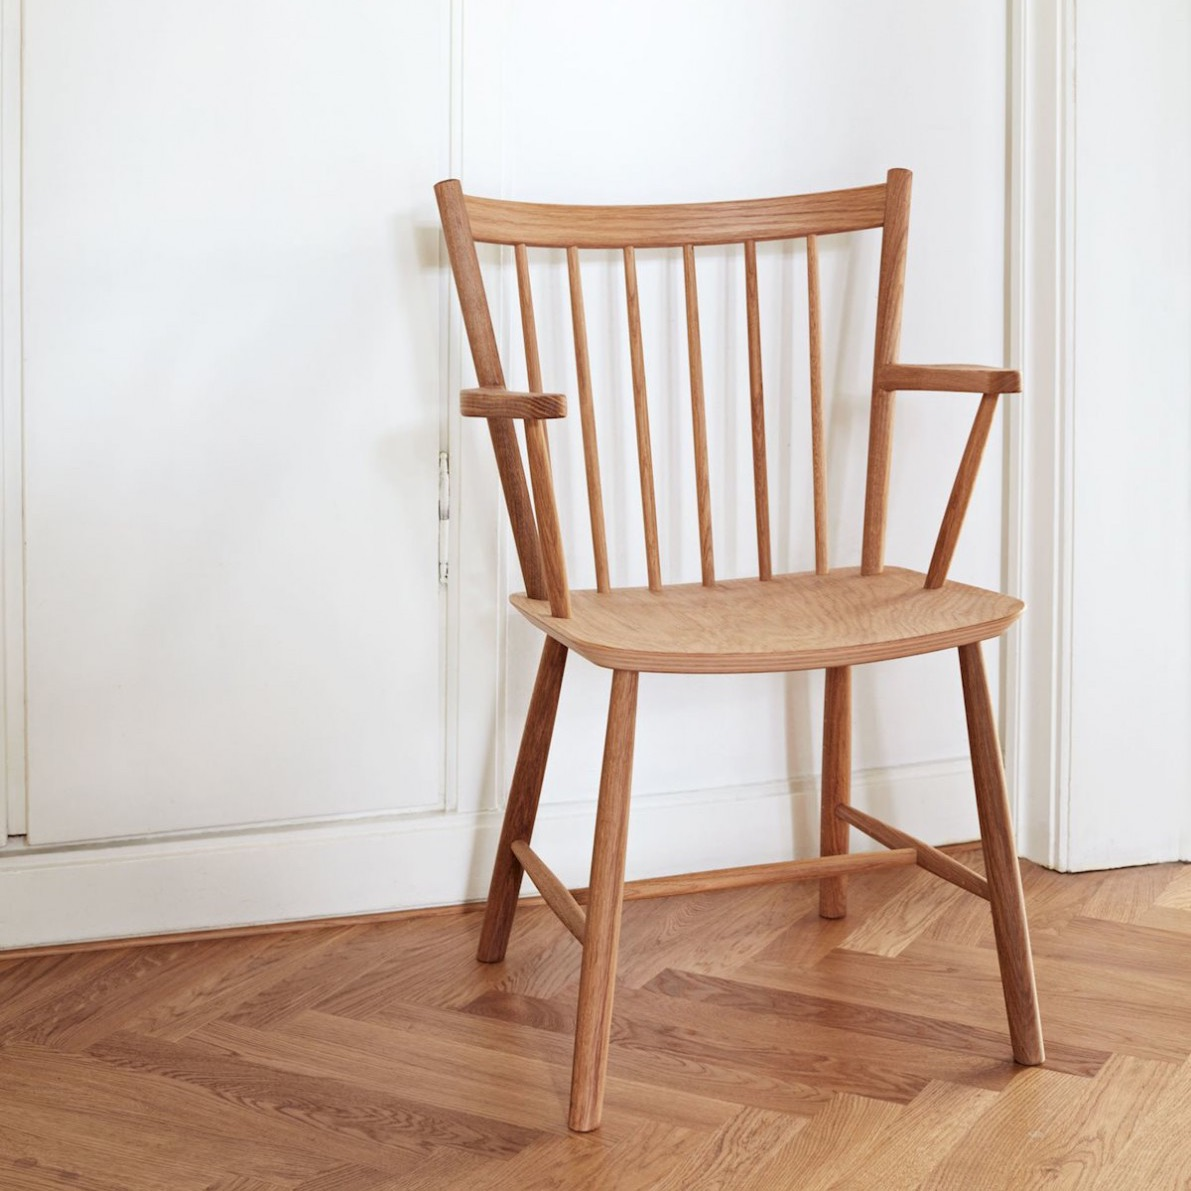 Hay j42 chair oiled solid oak stoel the shop online for Hay about a chair replica